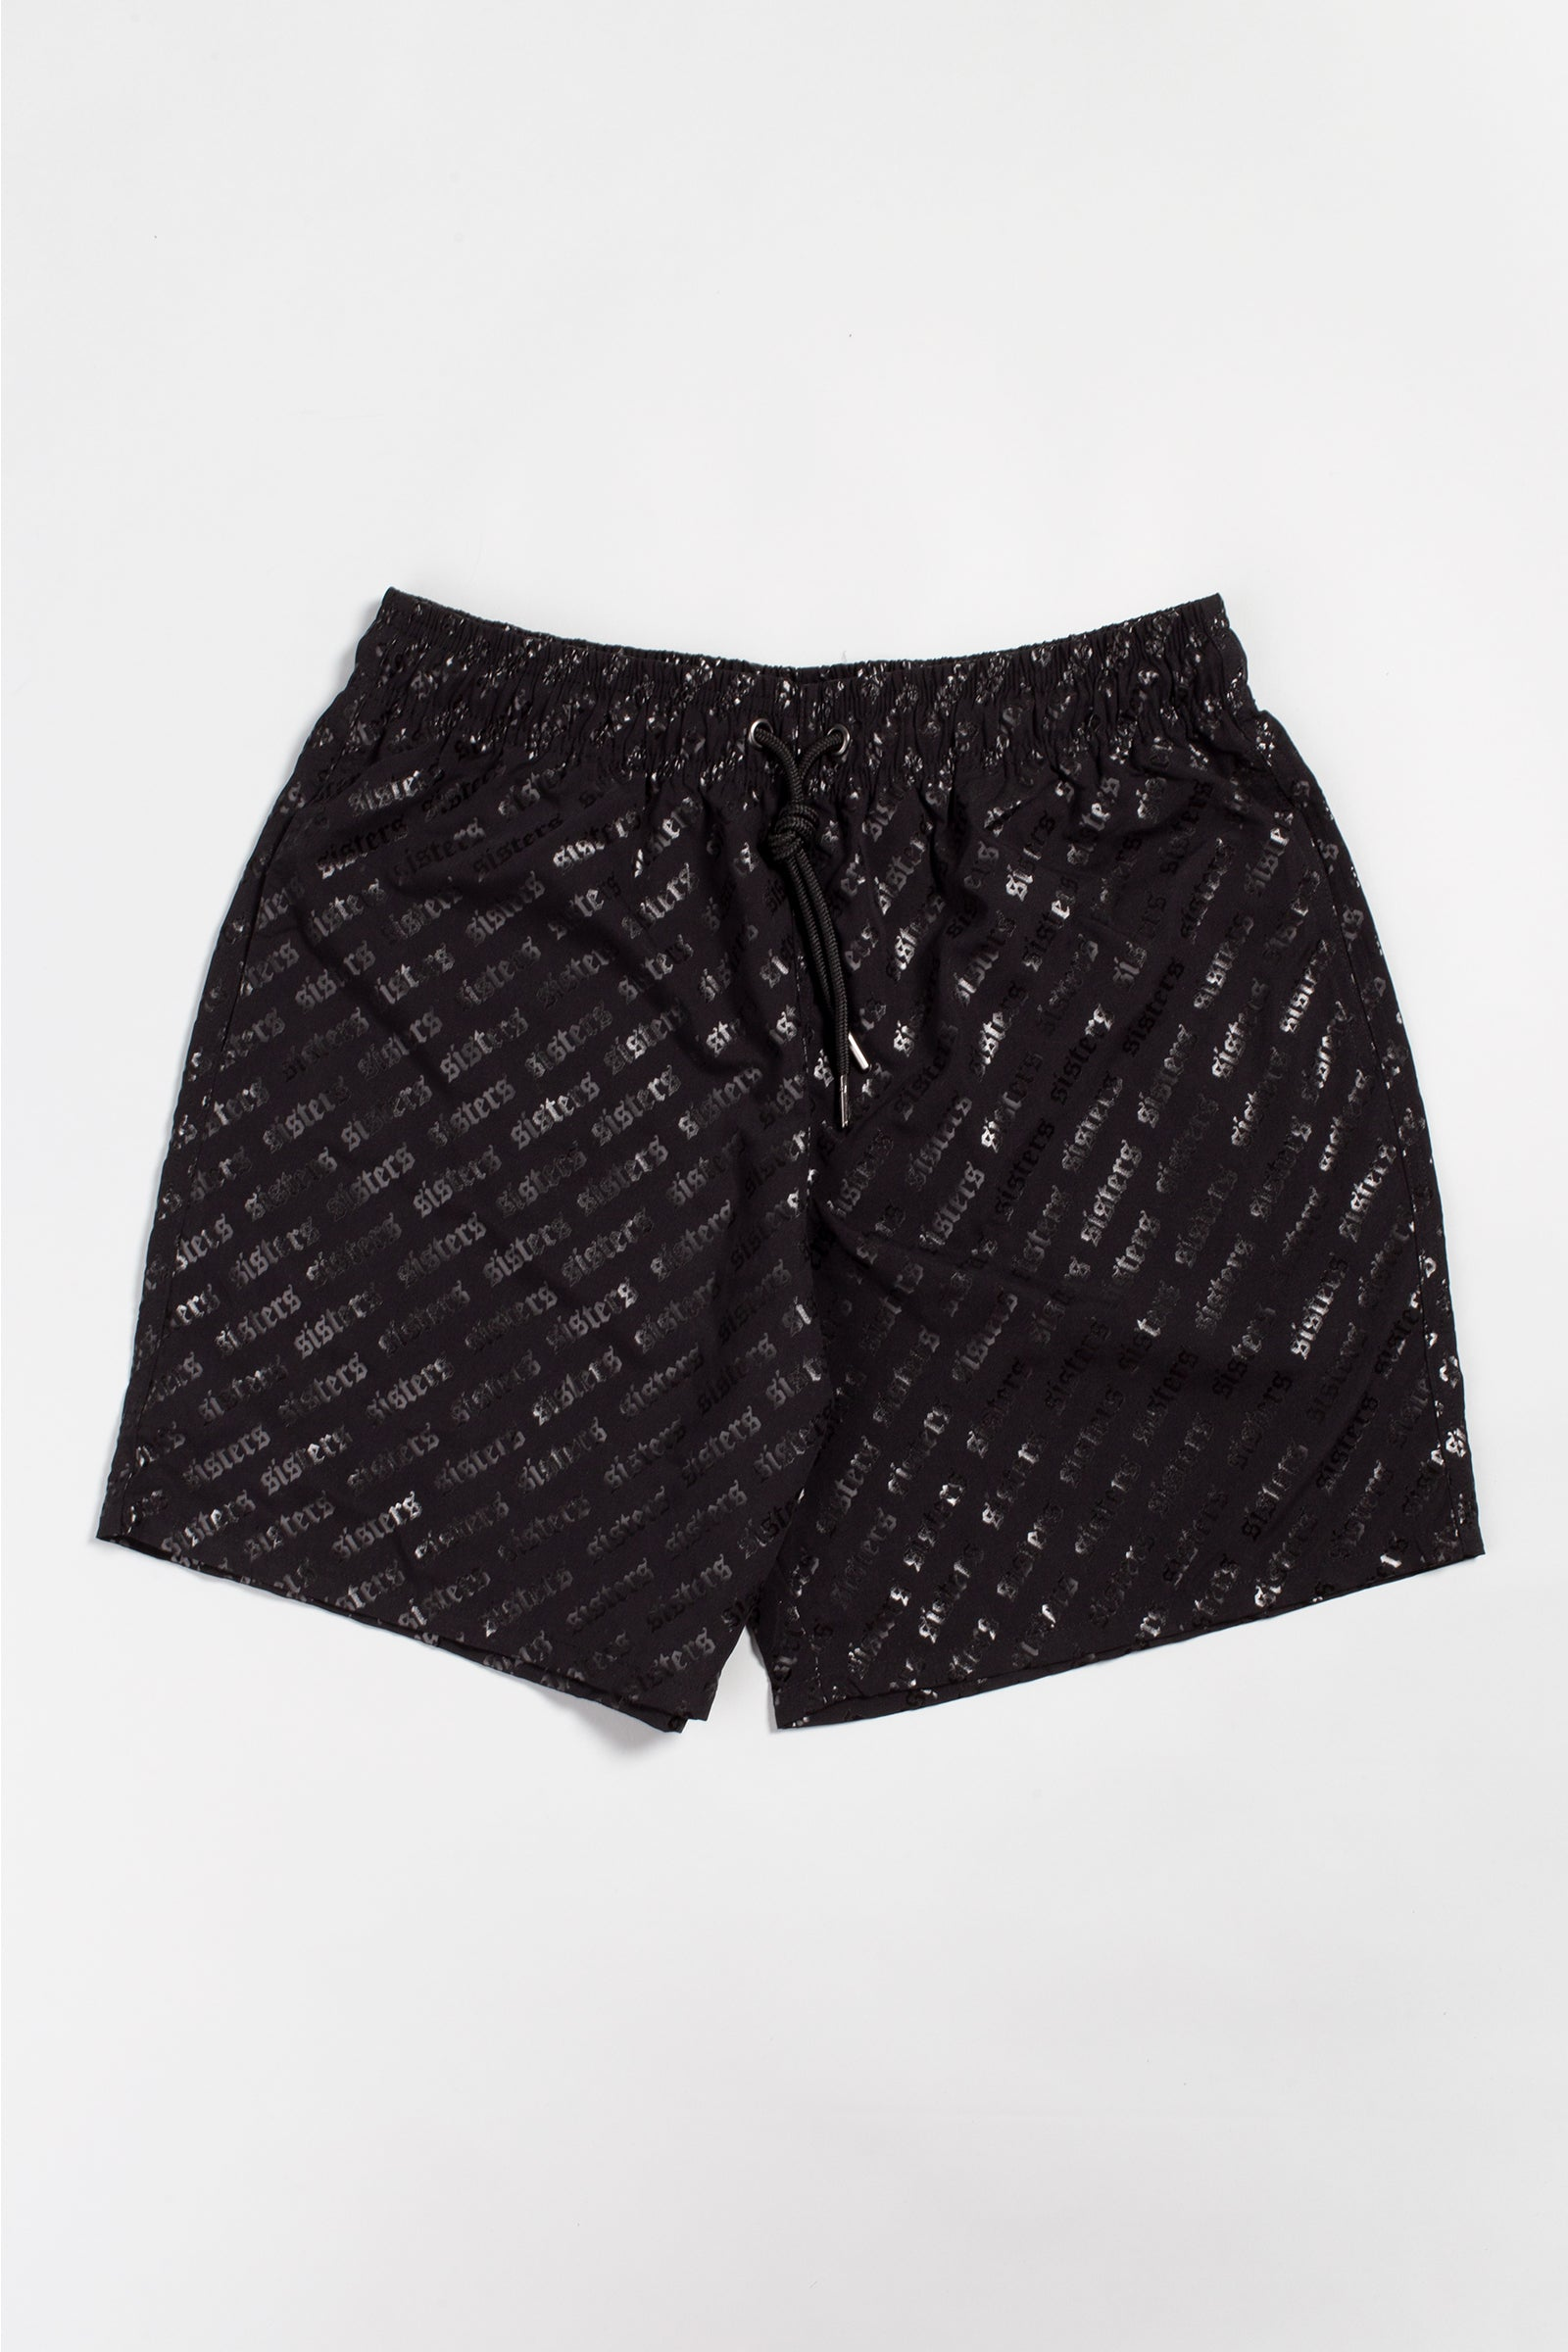 Sisters Black on Black Swim Trunks